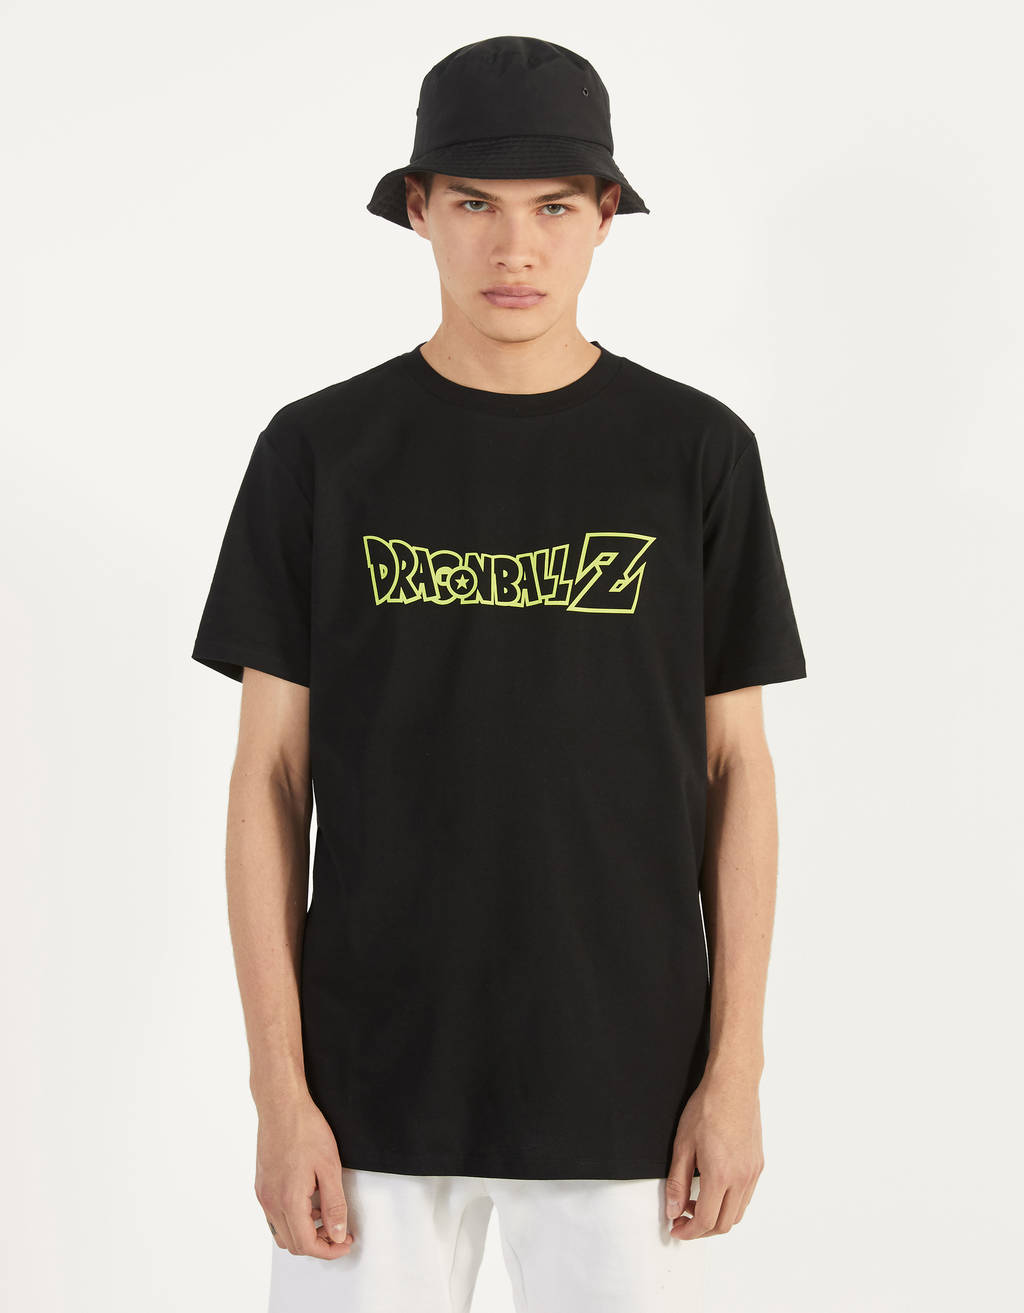 Dragon Ball Z x Bershka T-shirt